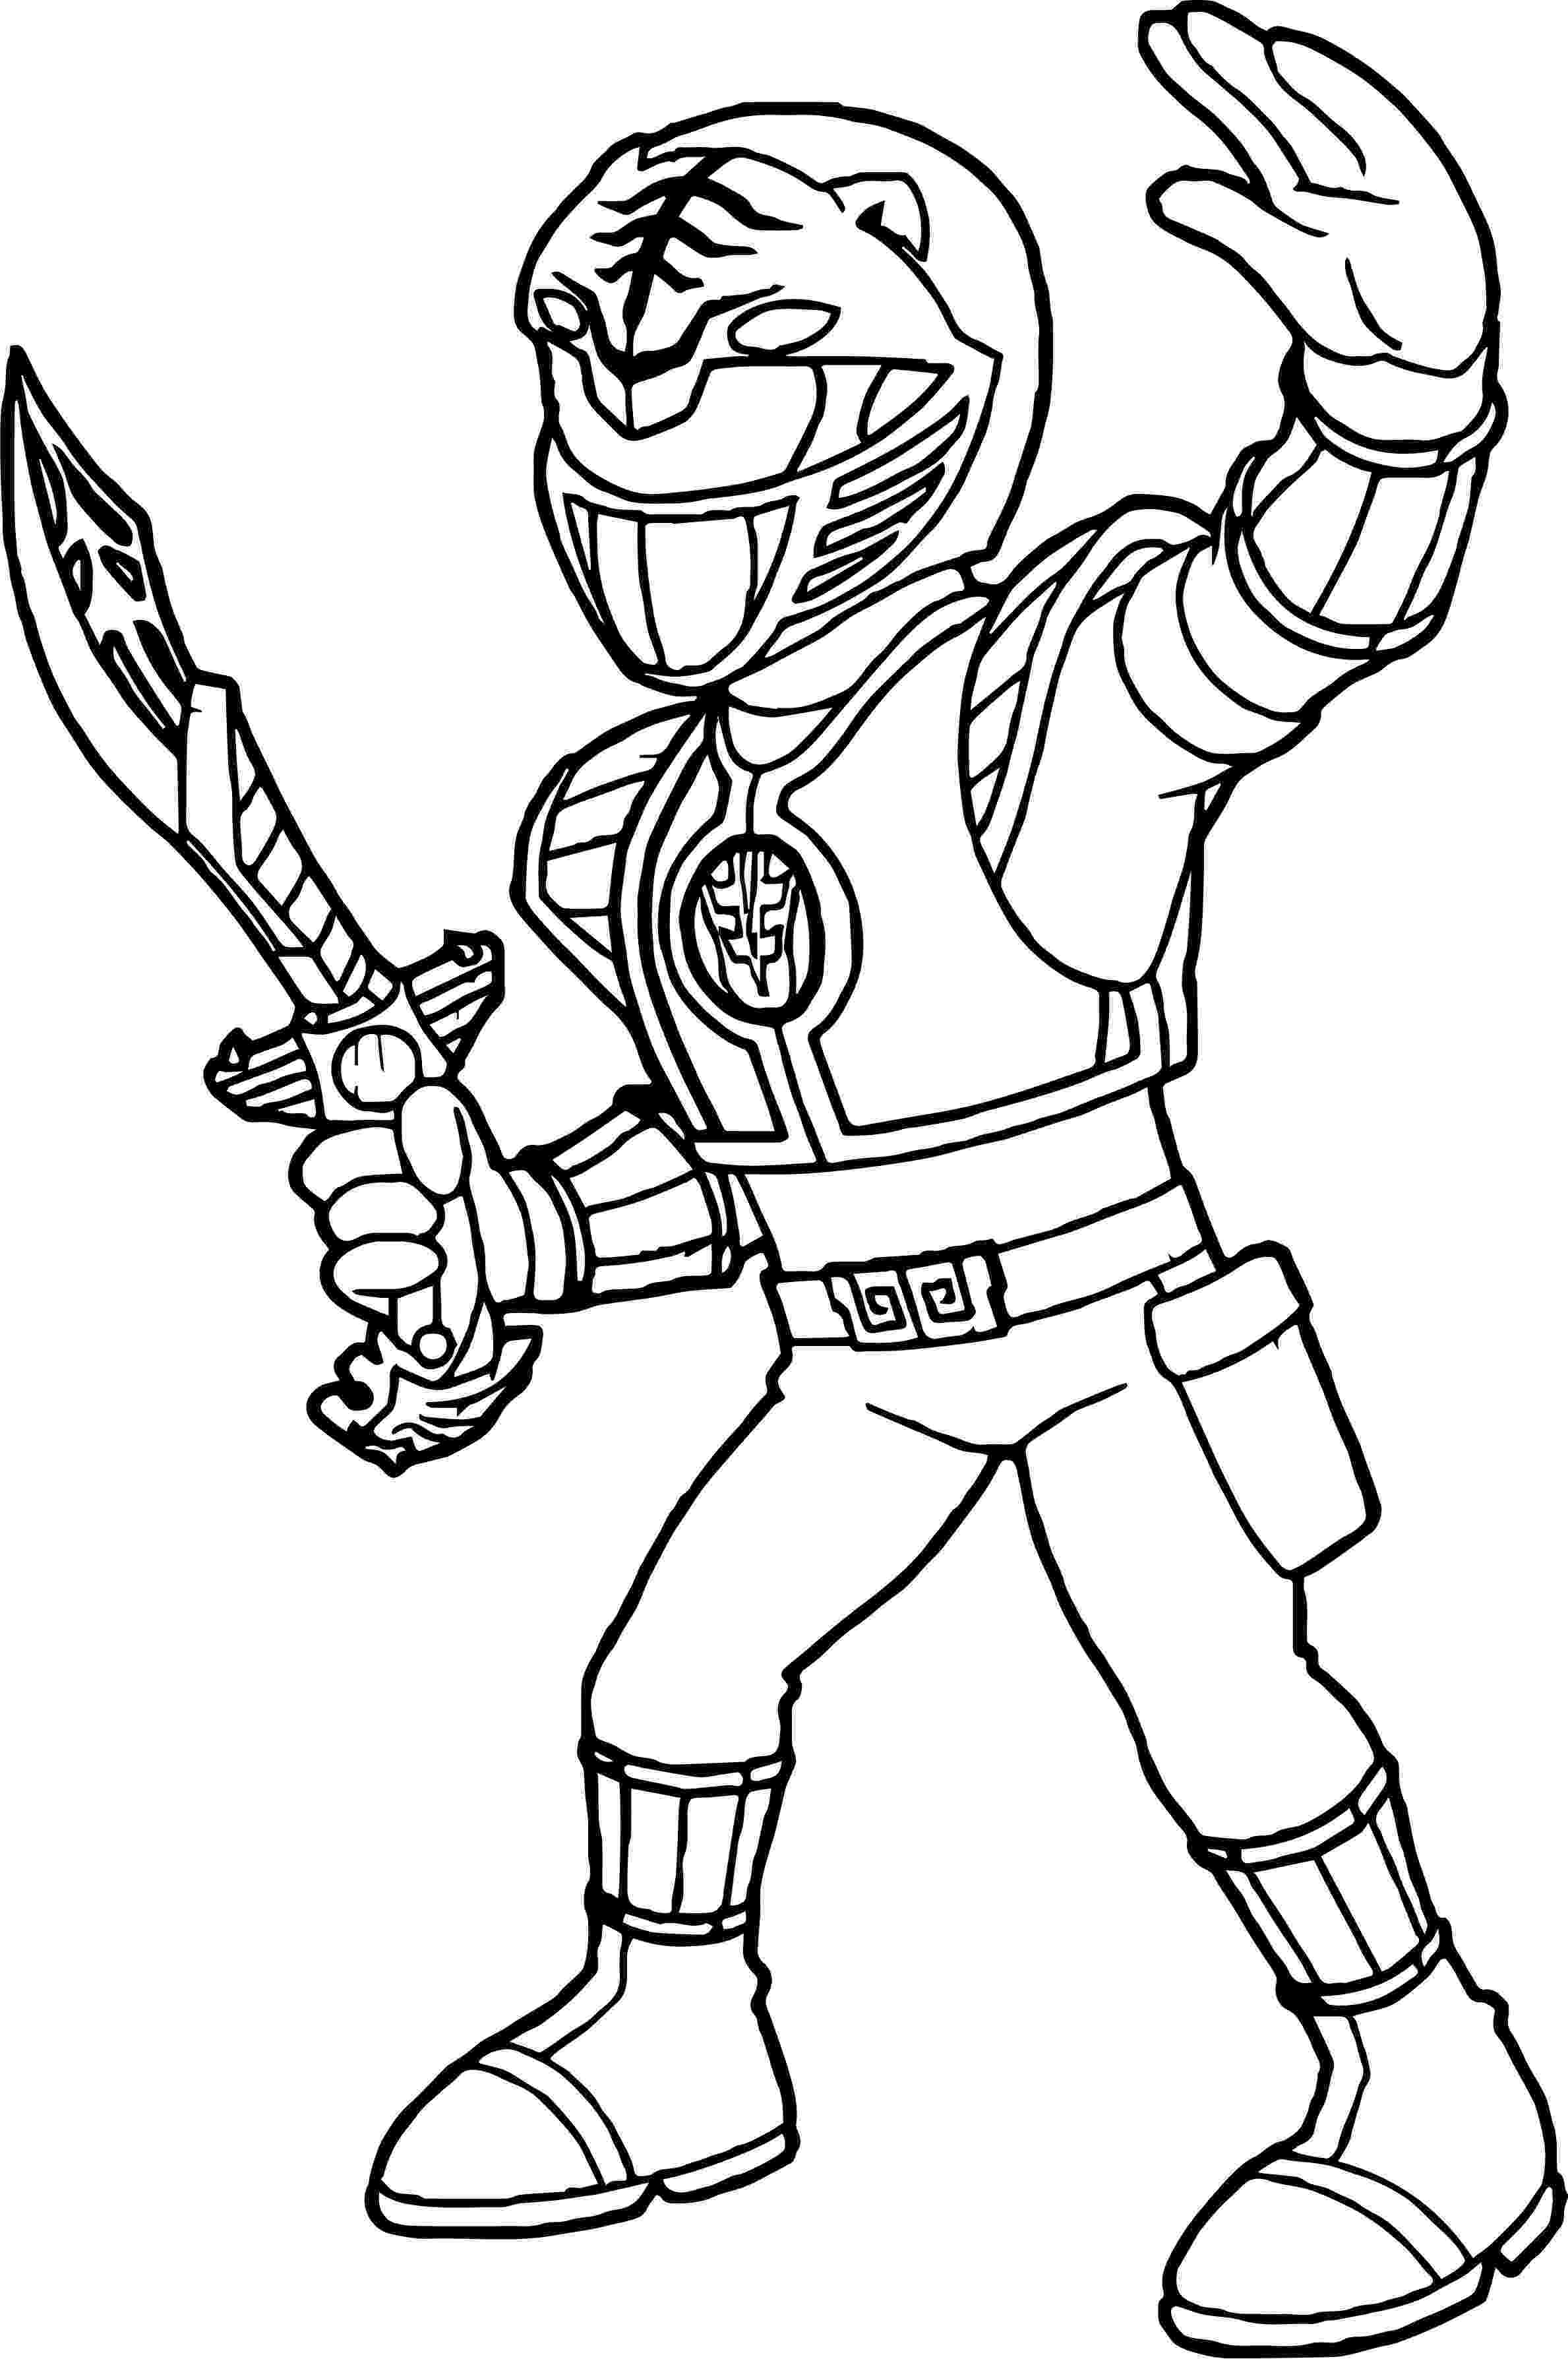 power rangers coloring pages 25 best power rangers coloring pages images on pinterest pages coloring rangers power